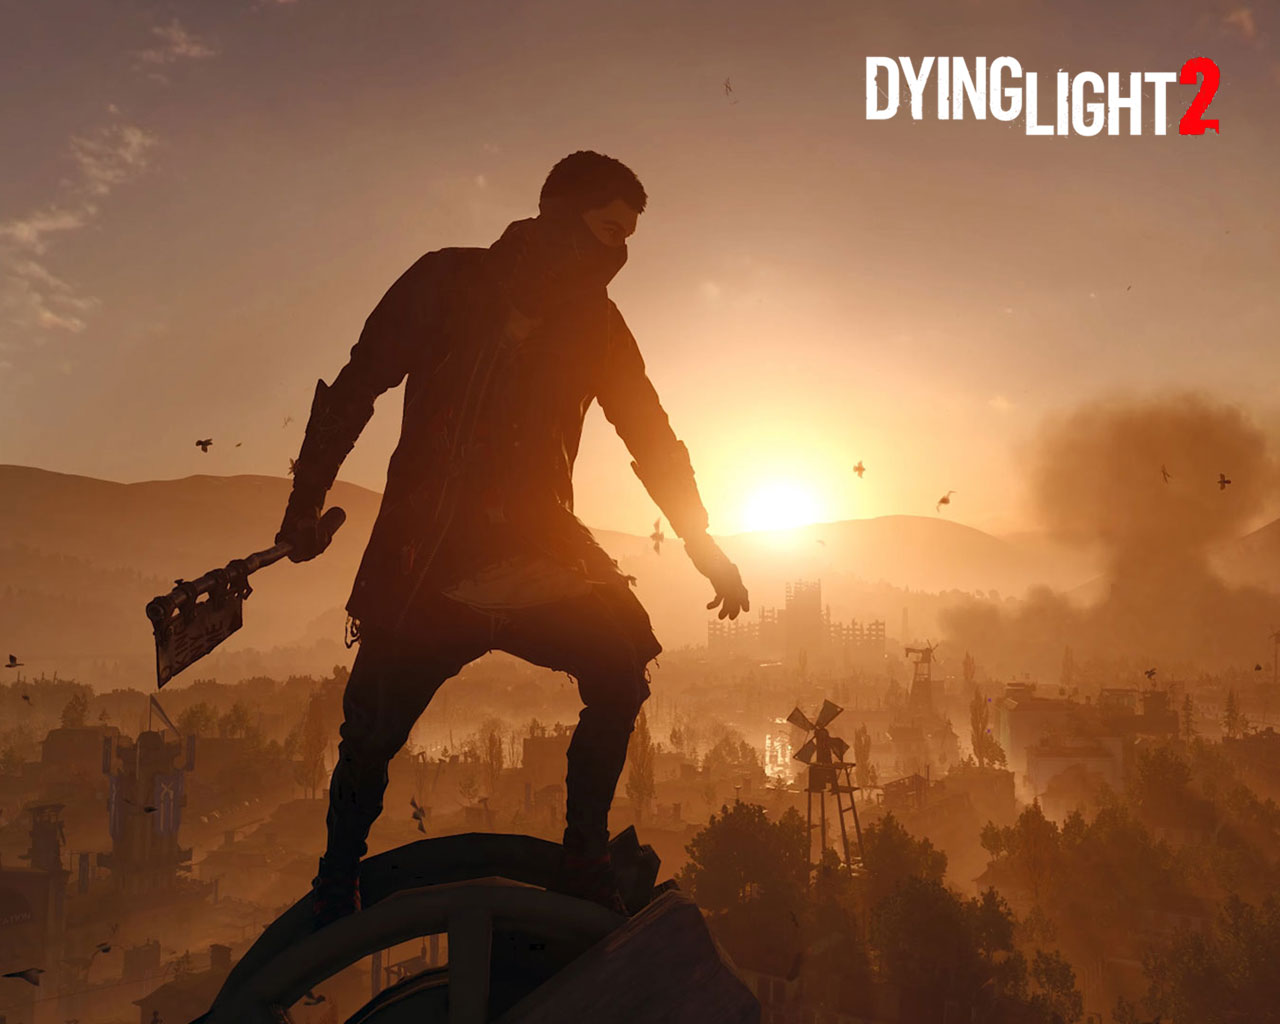 Free Dying Light 2 Wallpaper in 1280x1024